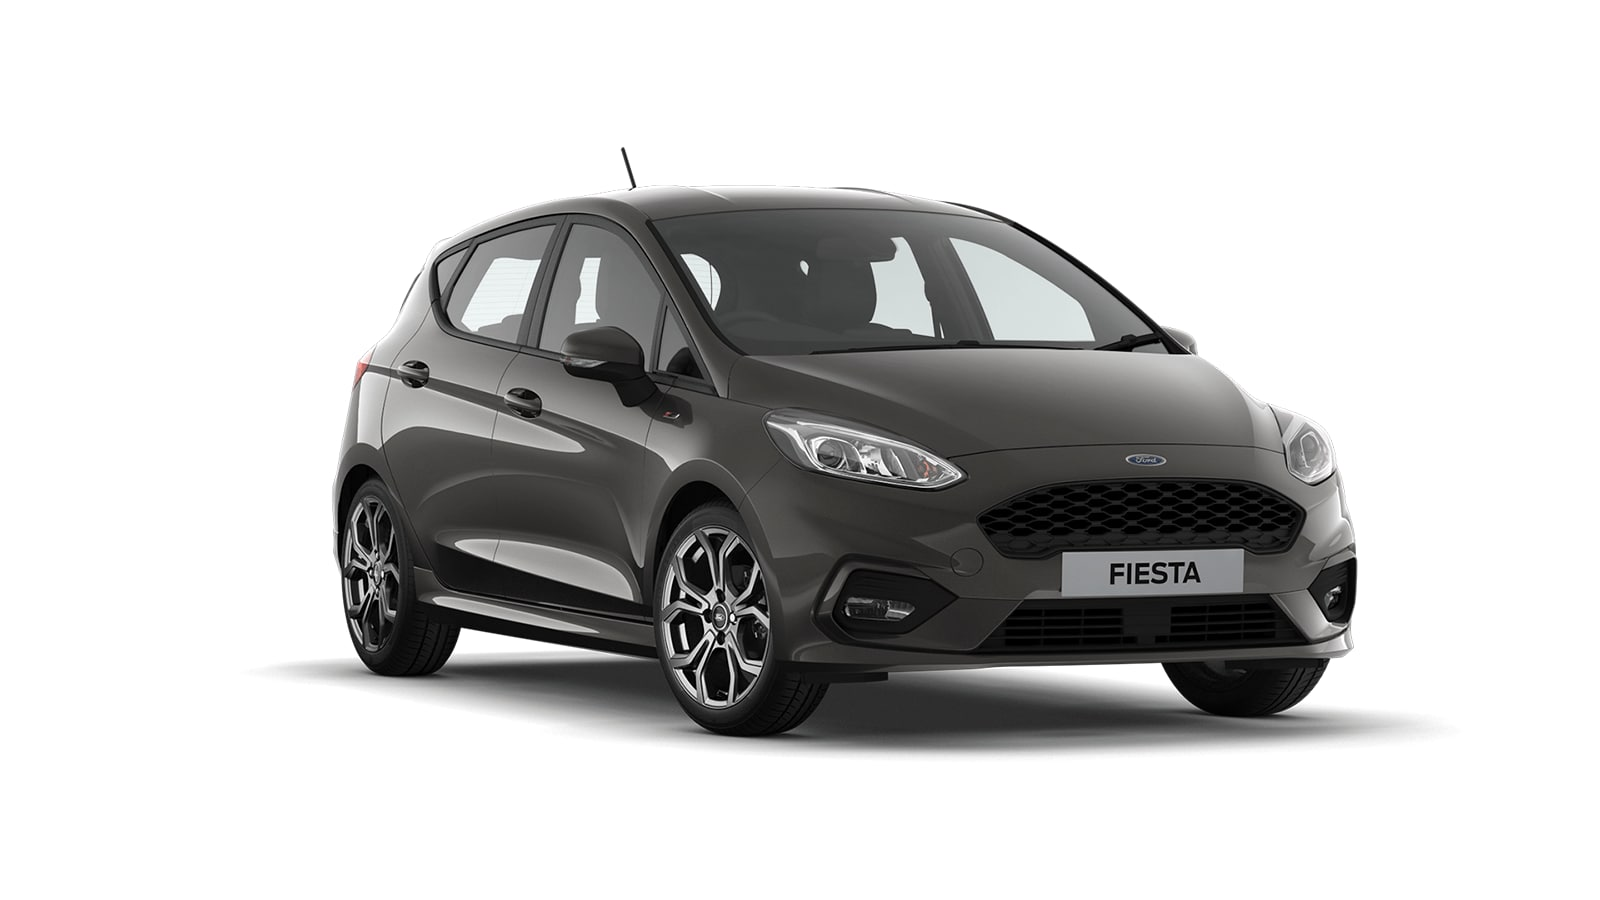 https://www.dealerinternet.co.uk/images/FIESTA%20B299/2019.5/5%20Door/ST-Line/MAGNETIC.png